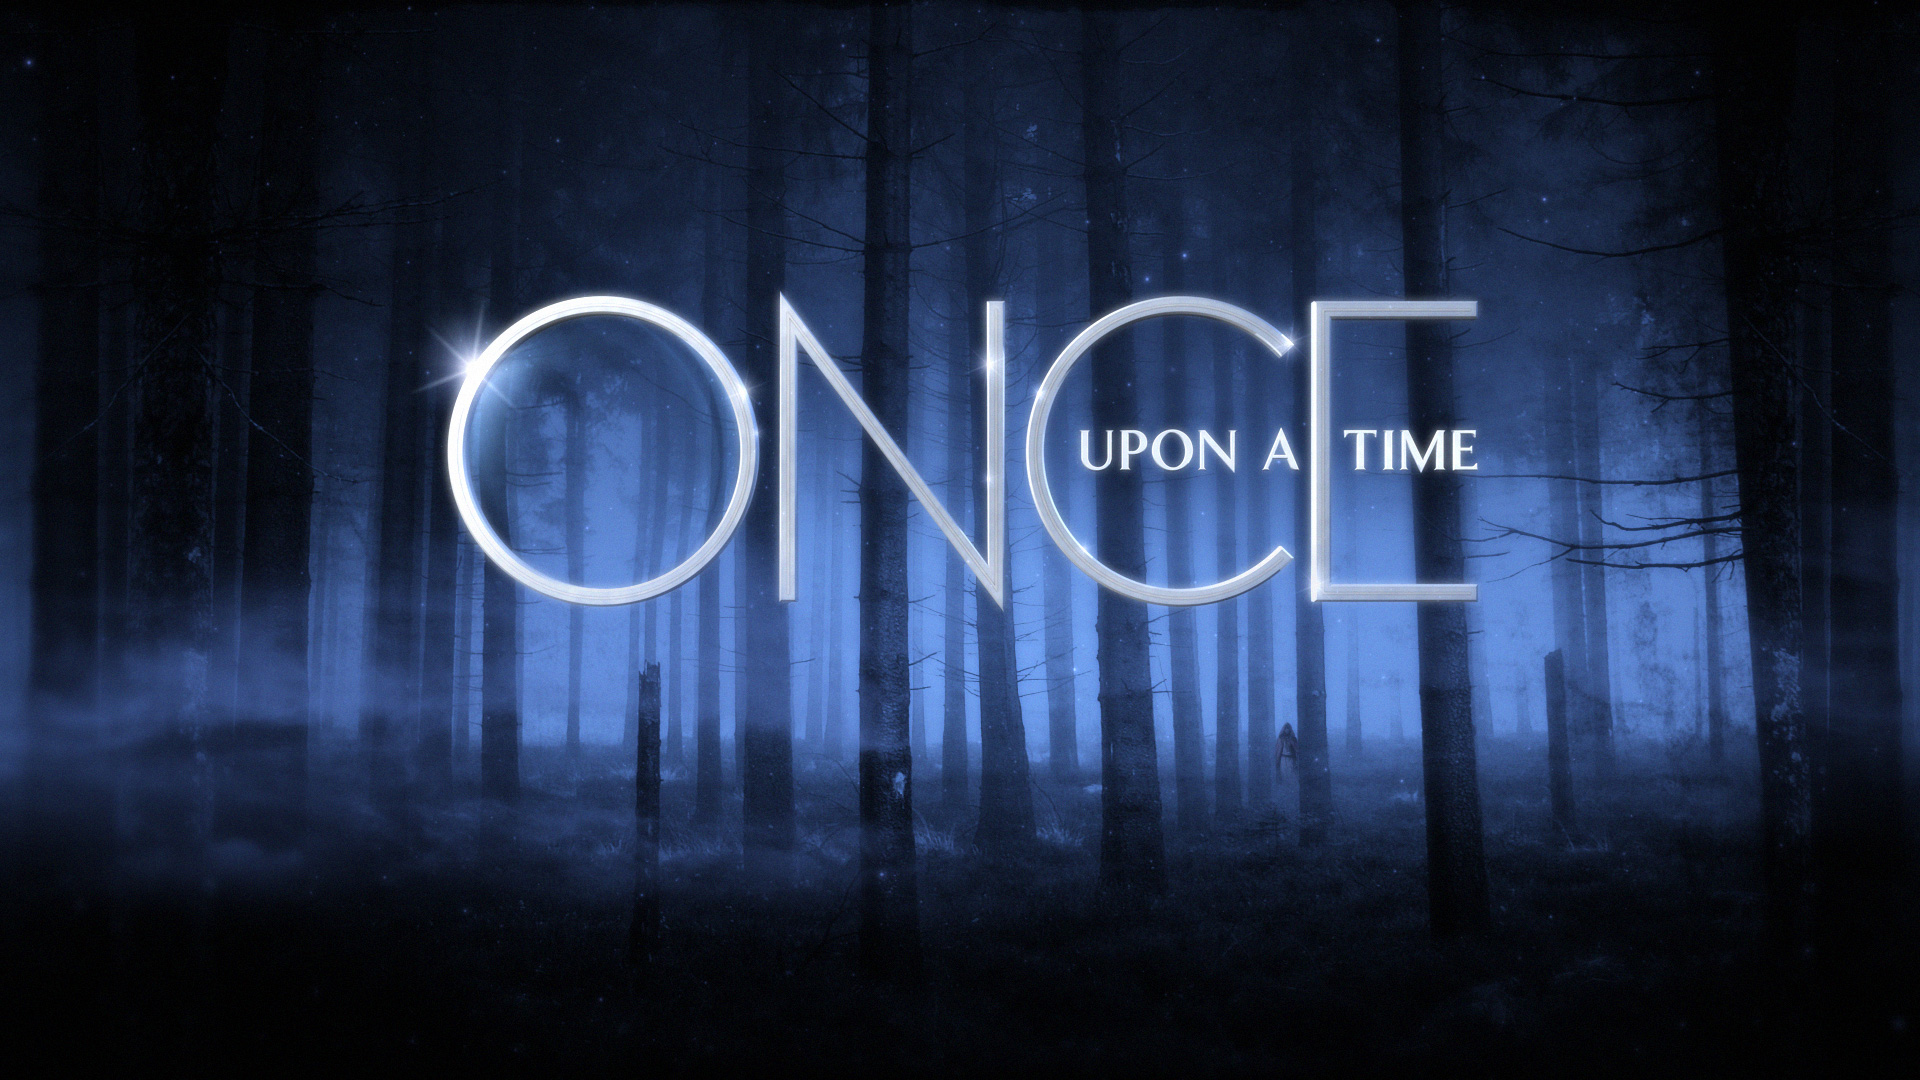 Alan Dale regresa a Once Upon a Time